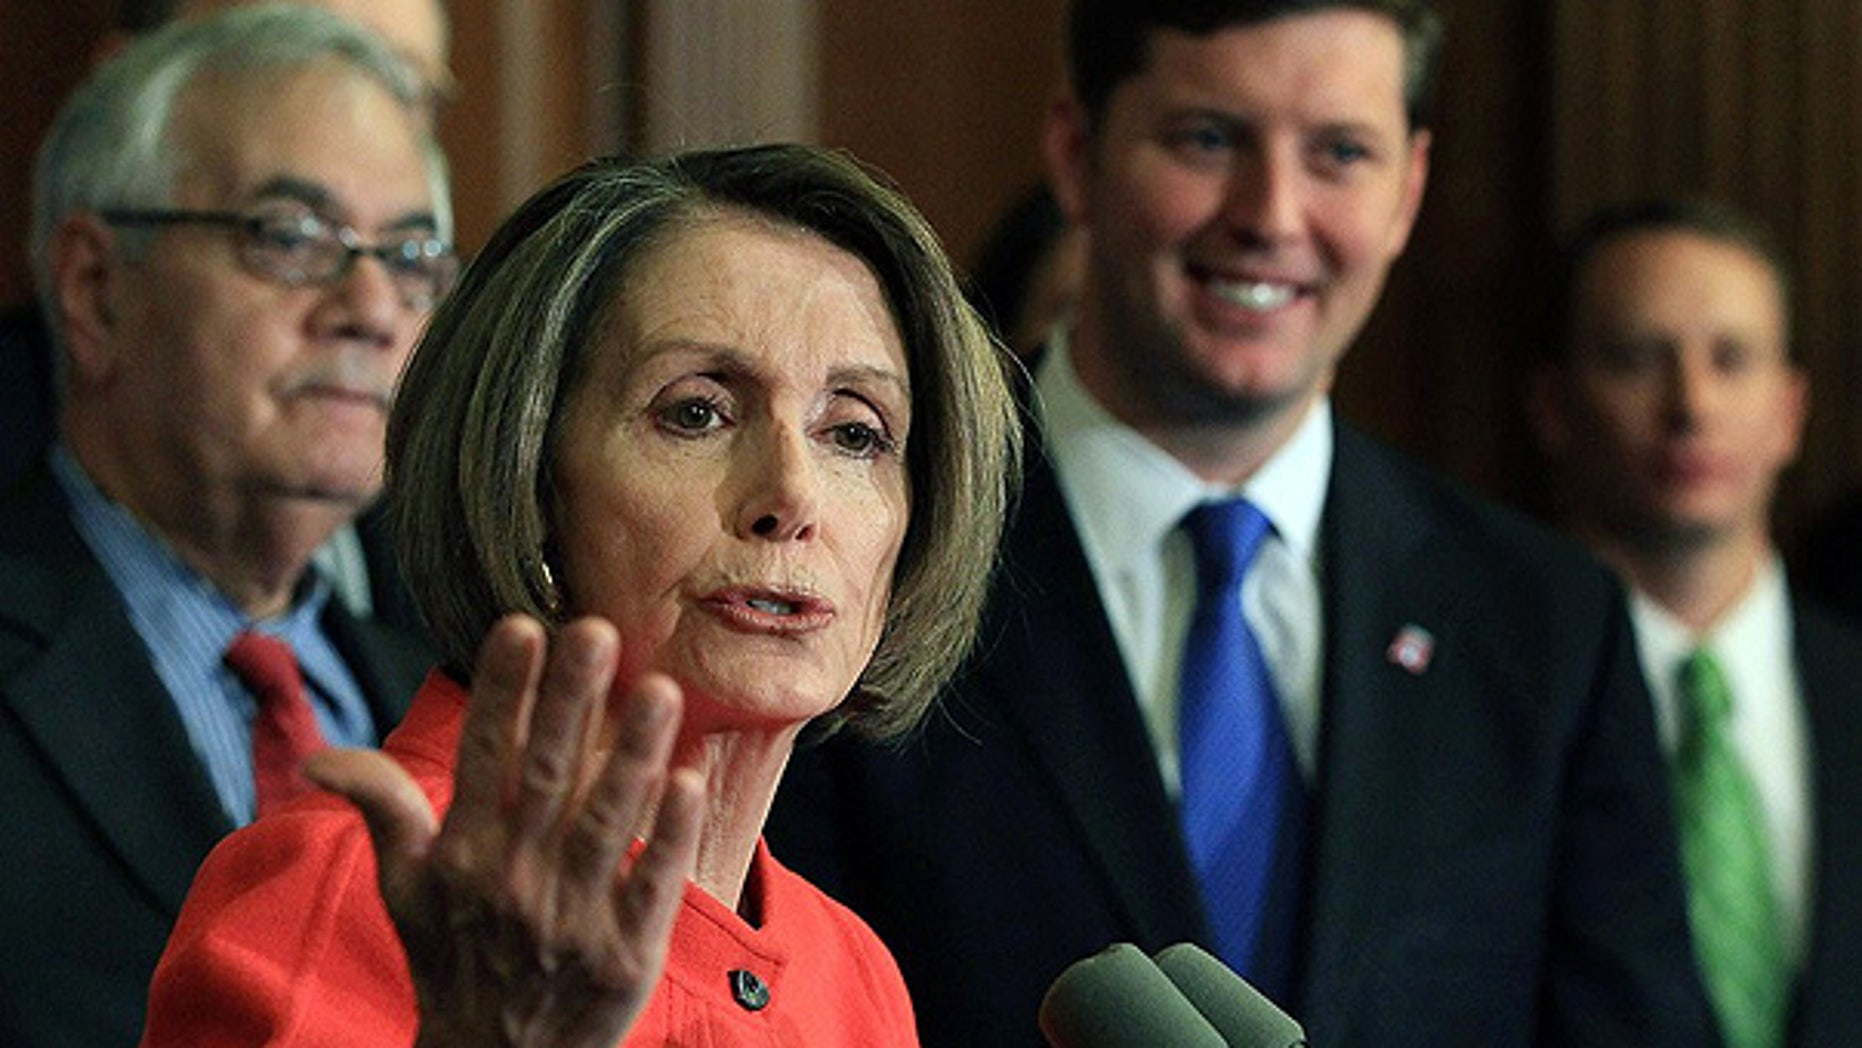 Dec. 15: House Speaker Nancy Pelosi is flanked by Rep. Barney Frank, left, and Rep. Patrick Murphy during a news conference on Capitol Hill.